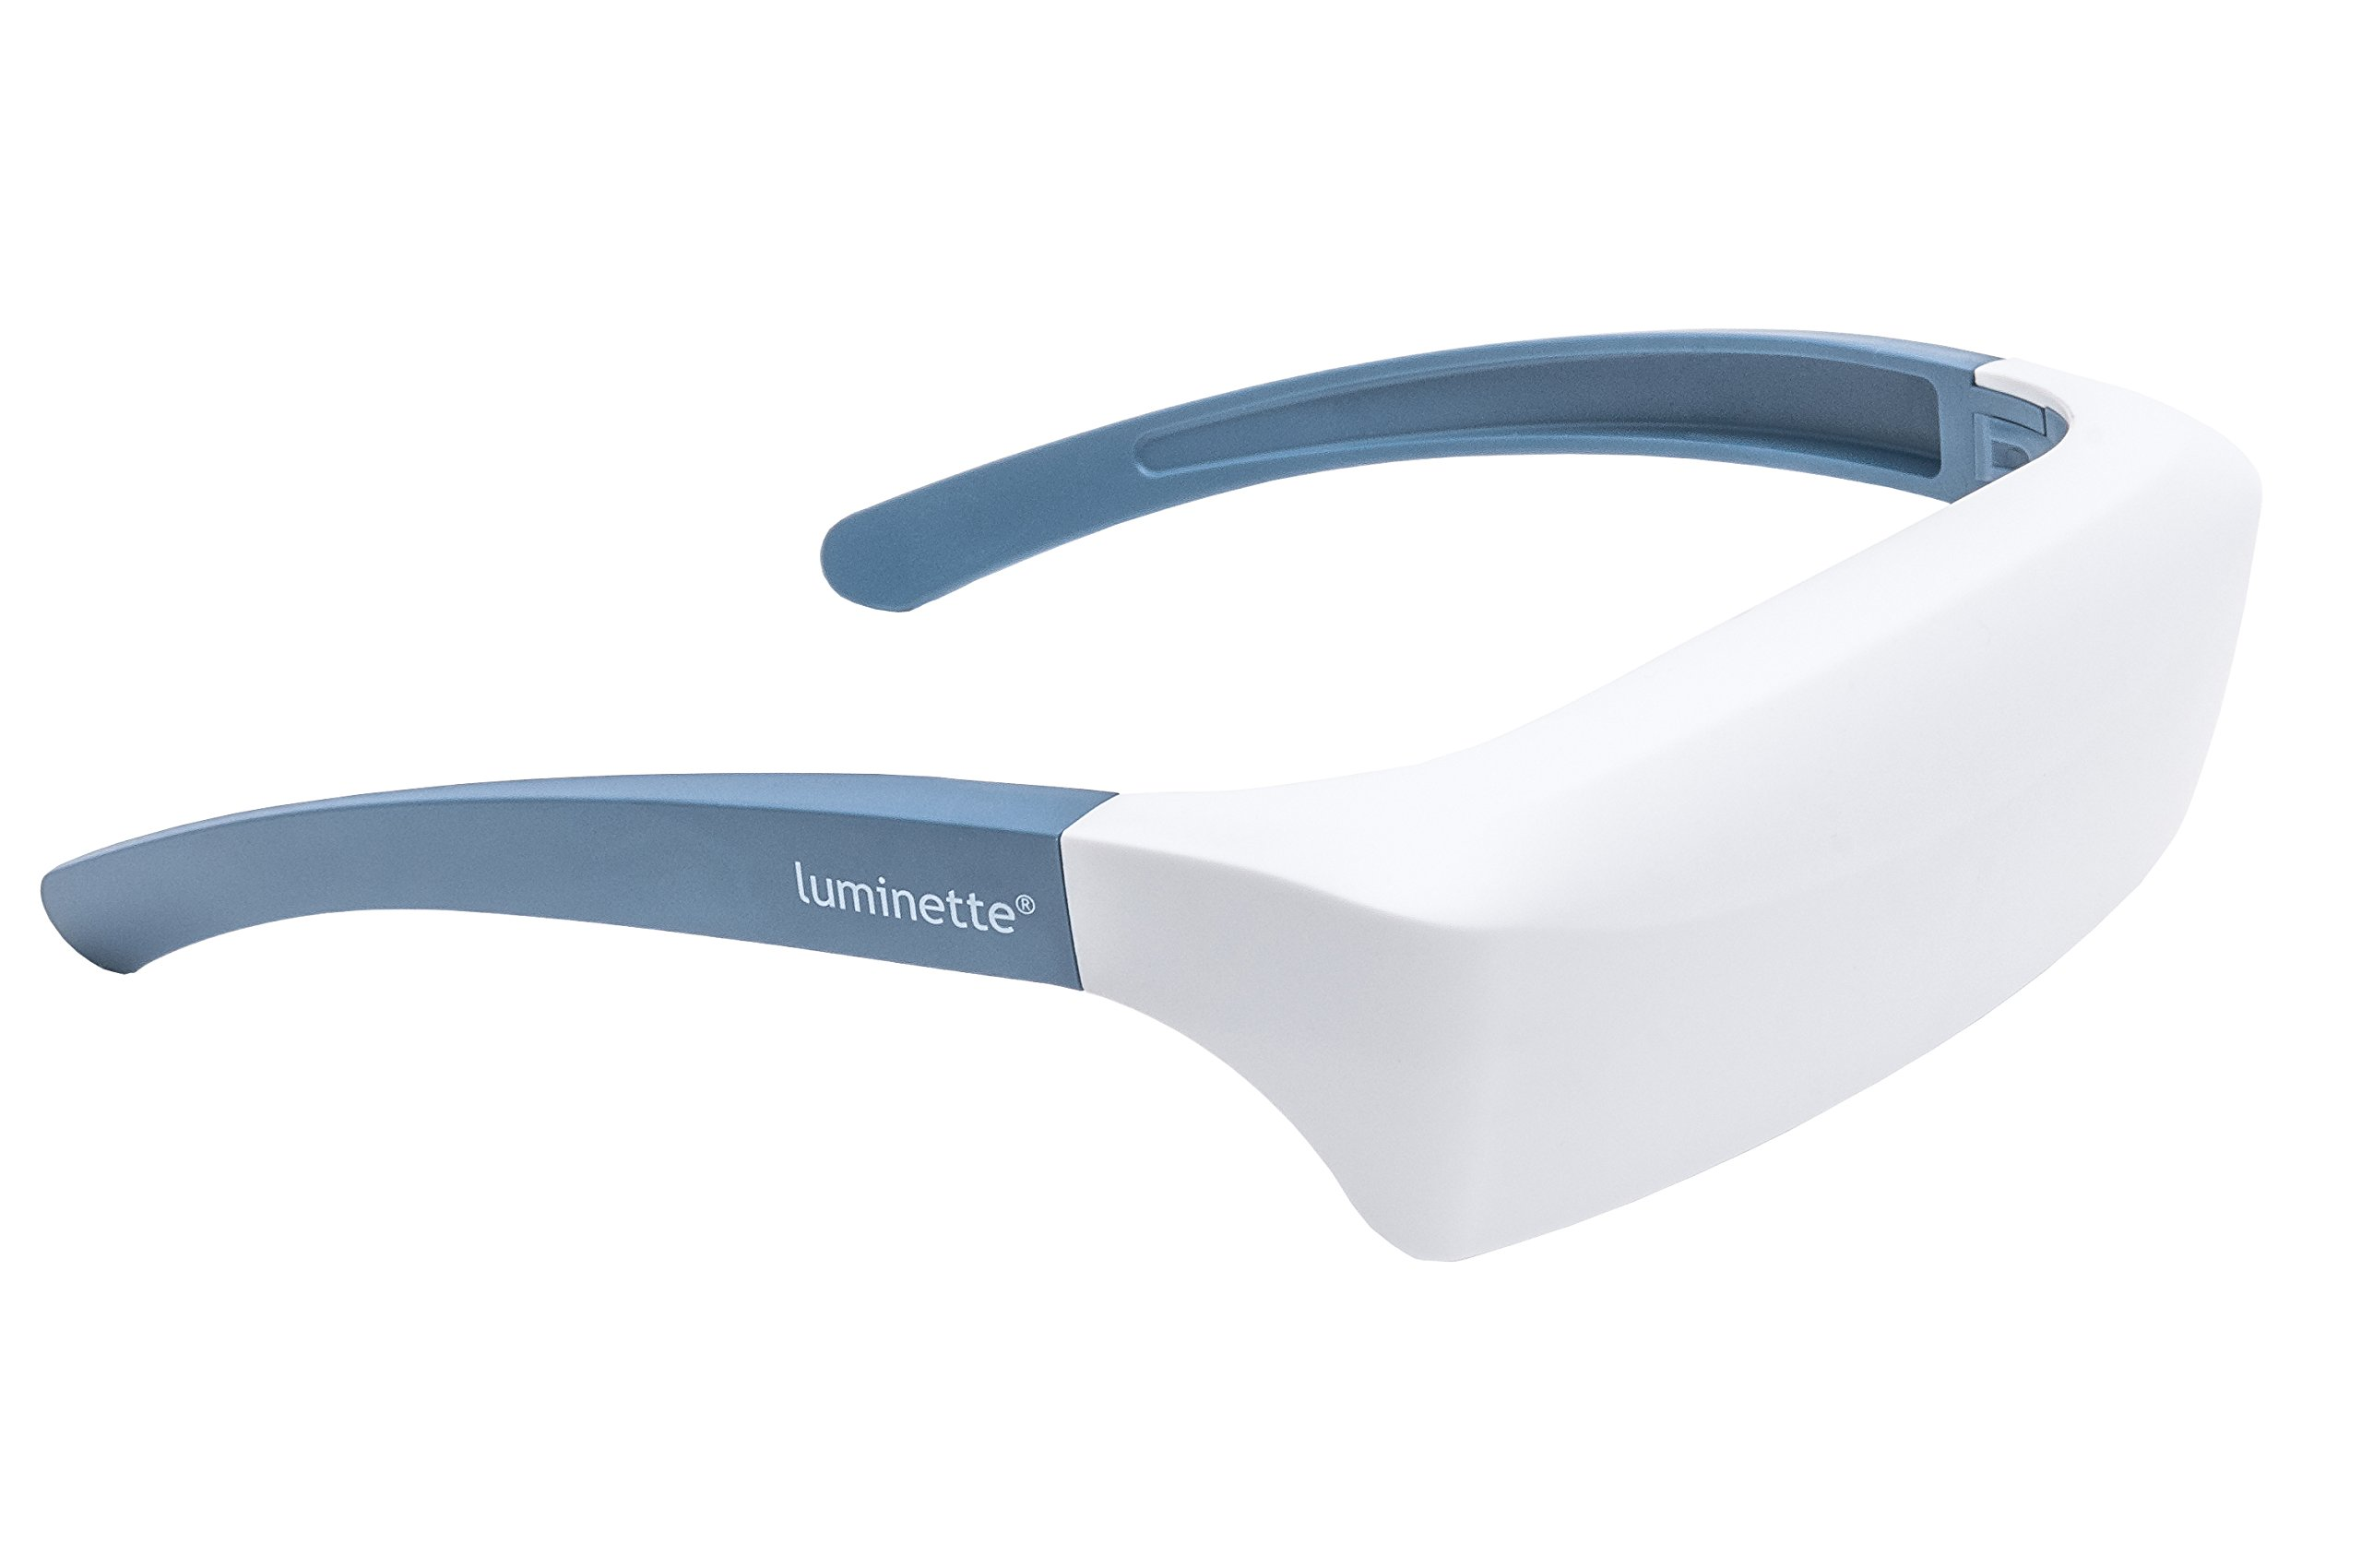 Luminette 2 - SAD Bright Light Therapy Glasses - Improve your mood. Regulate your sleep